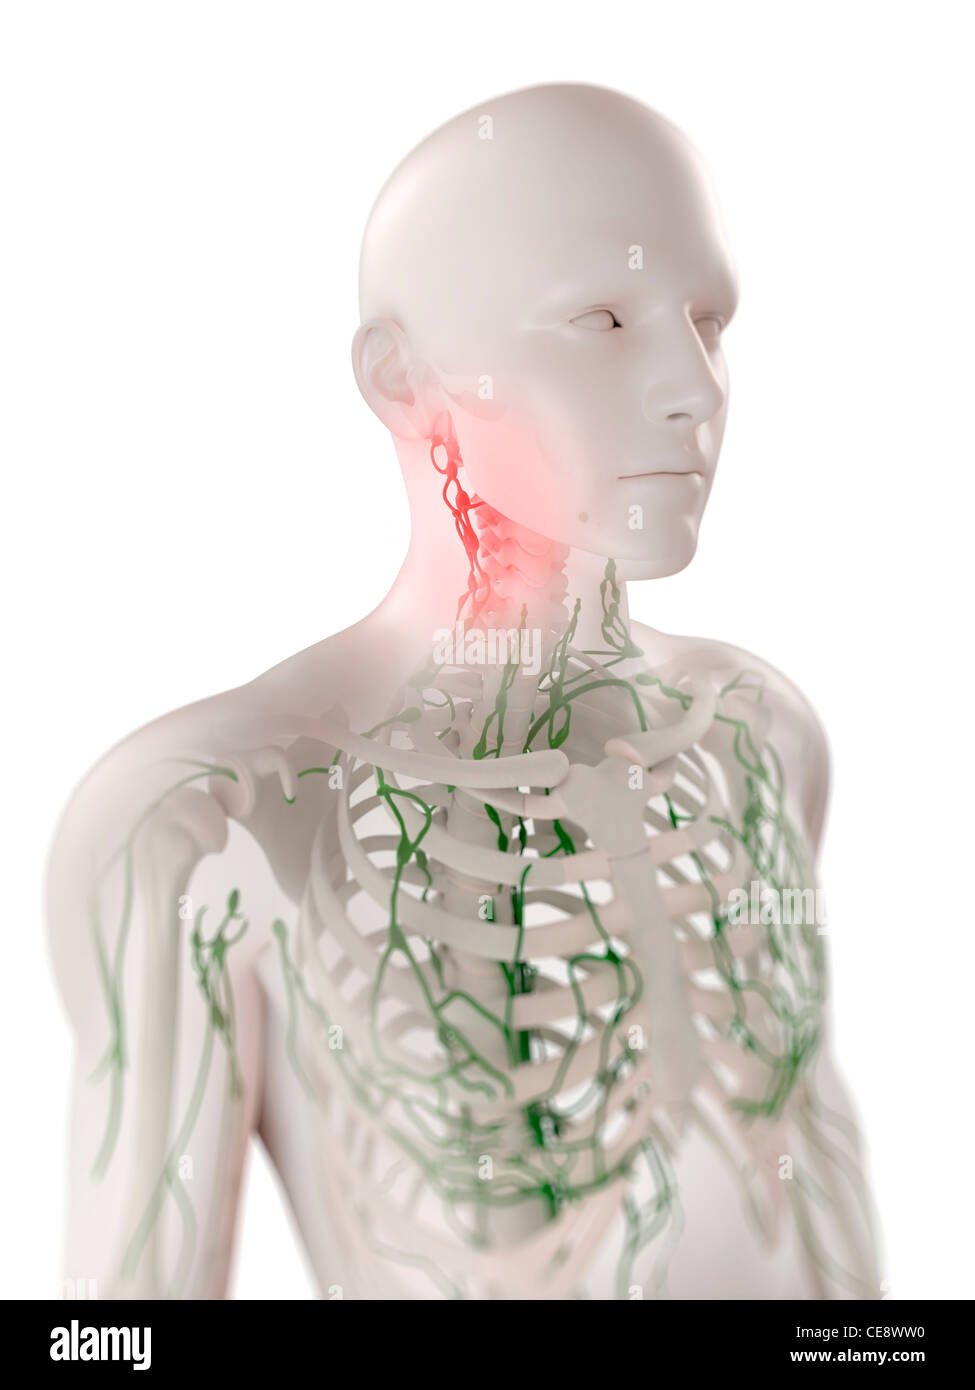 Why lymph nodes are inflamed